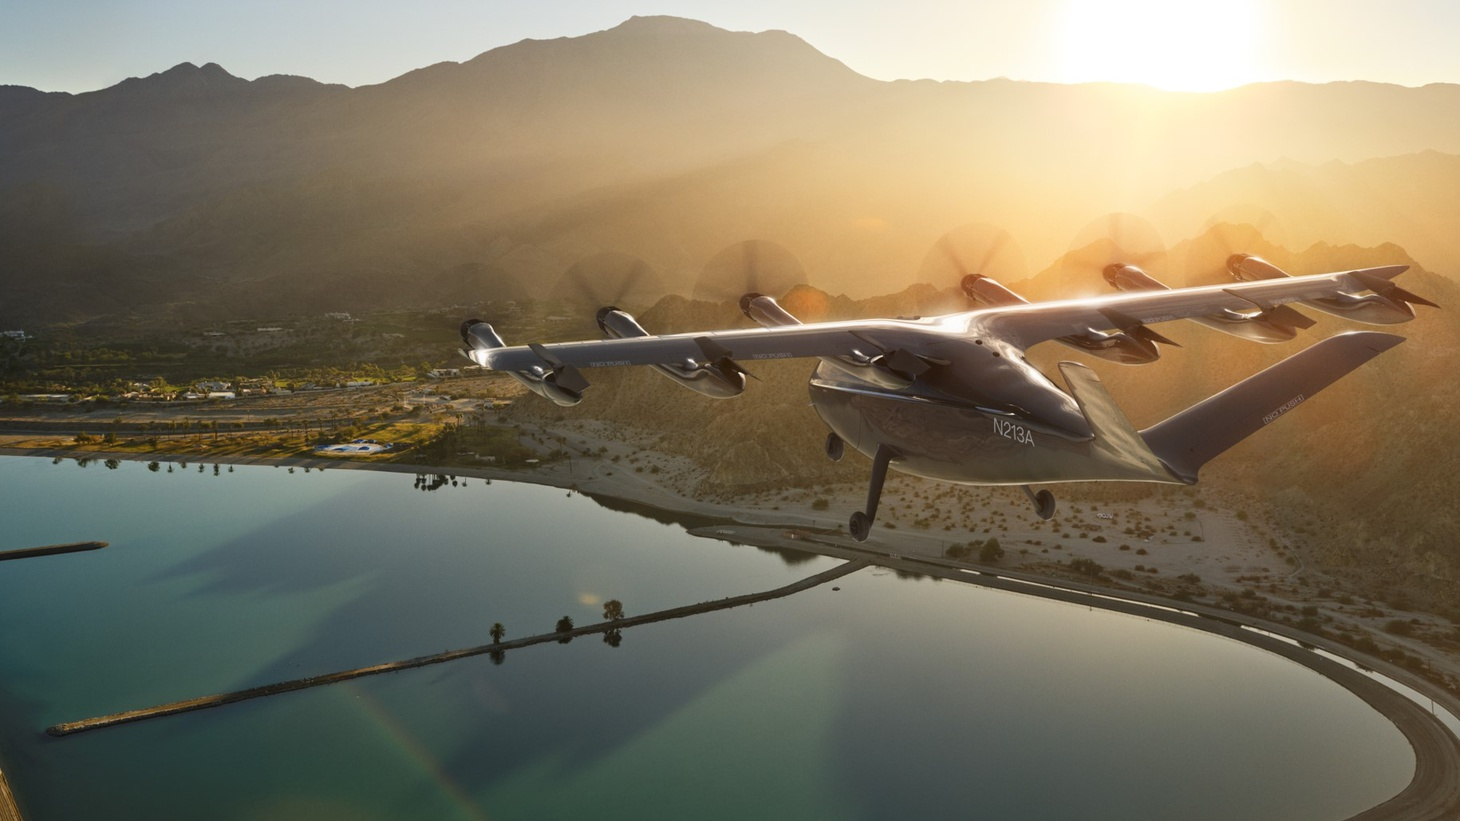 LA is partnering with startup Archer to bring flying cars to the city, though in actual projections of the future, the skies are a lot busier. The roads may still be jammed too.